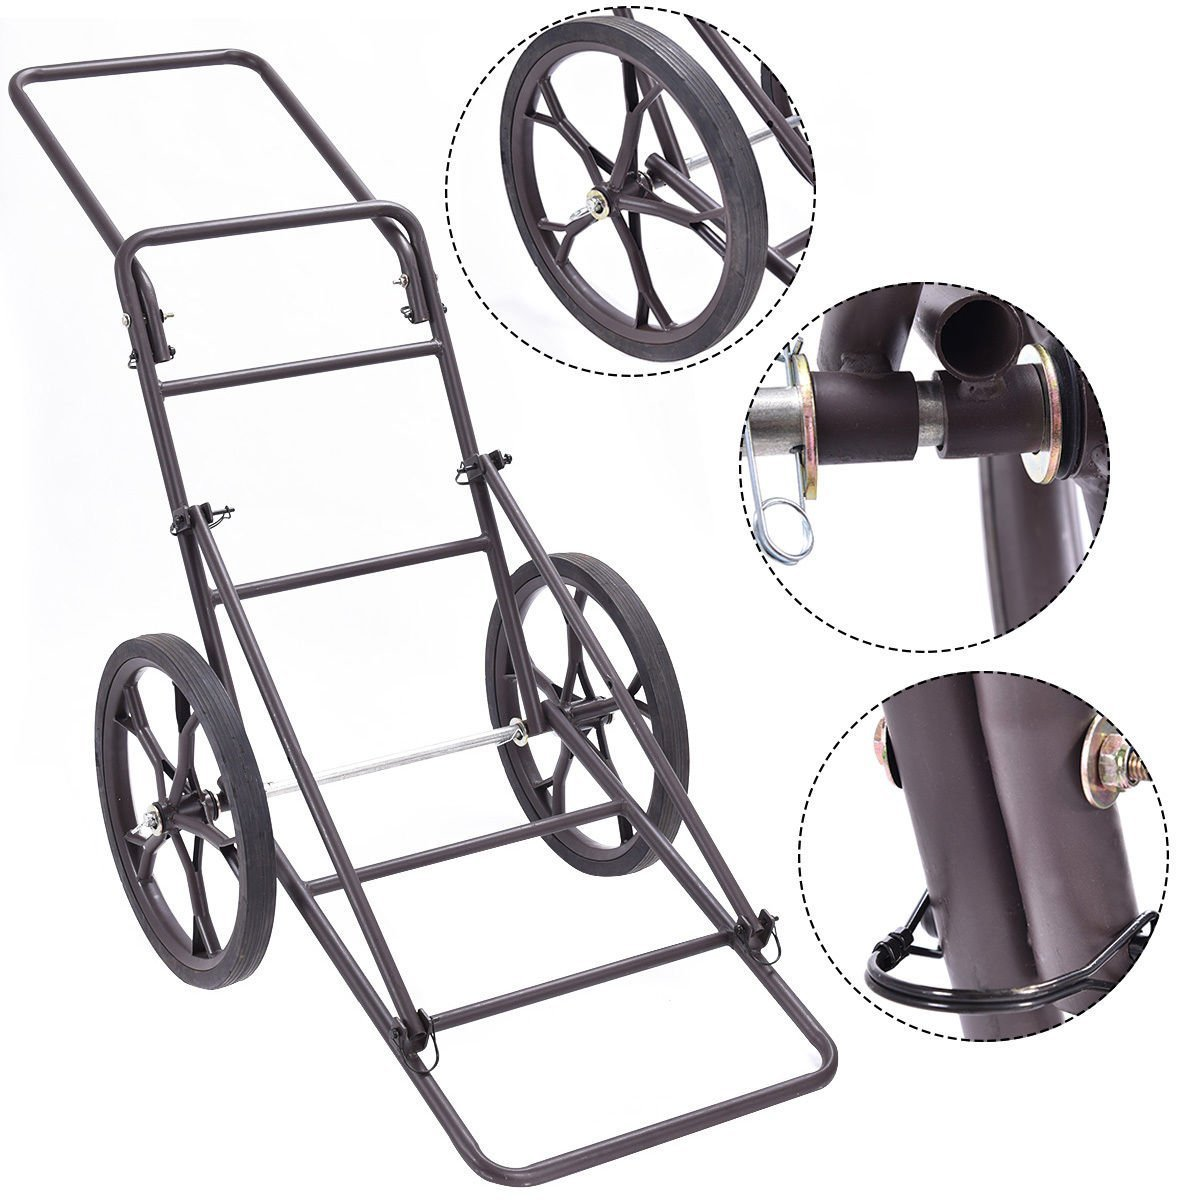 Goplus Folding Deer Game Cart Larger Capacity 500lbs Hauler Utility Gear Dolly Cart Hunting Accessories by Goplus (Image #2)